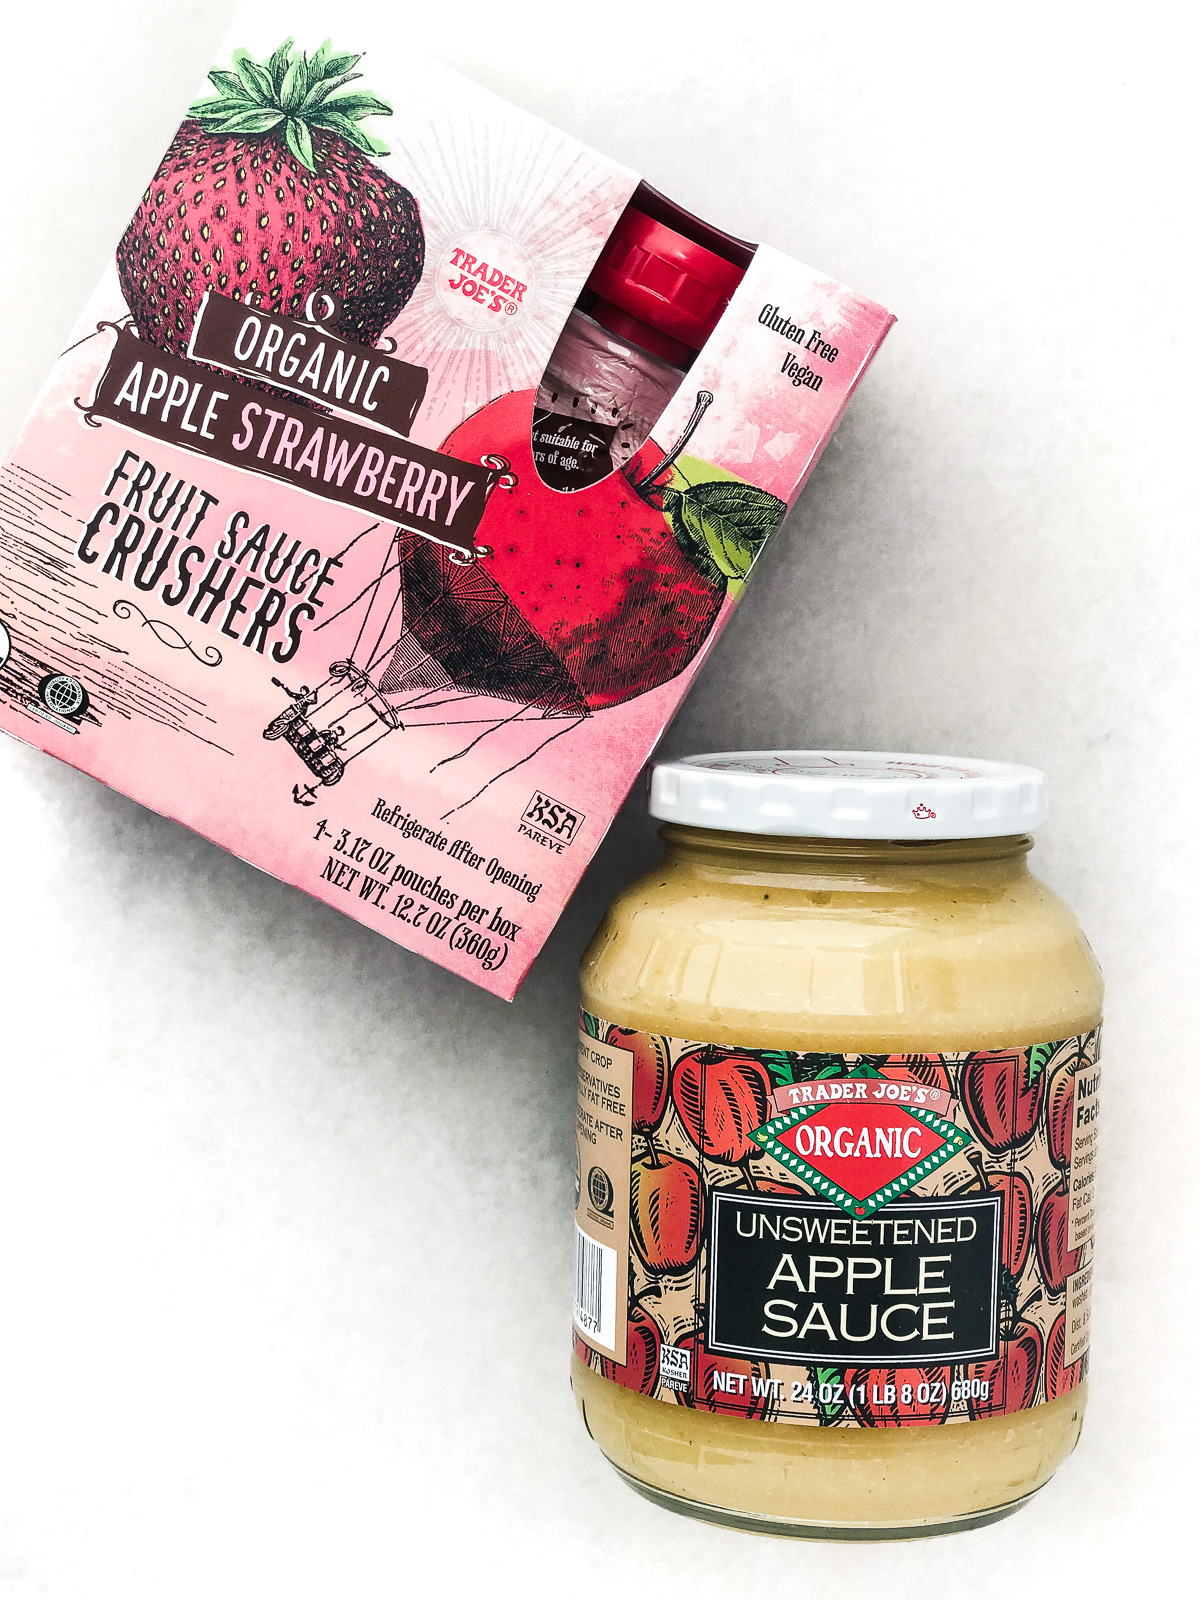 Trader Joe's applesauce and fruit squeeze packs